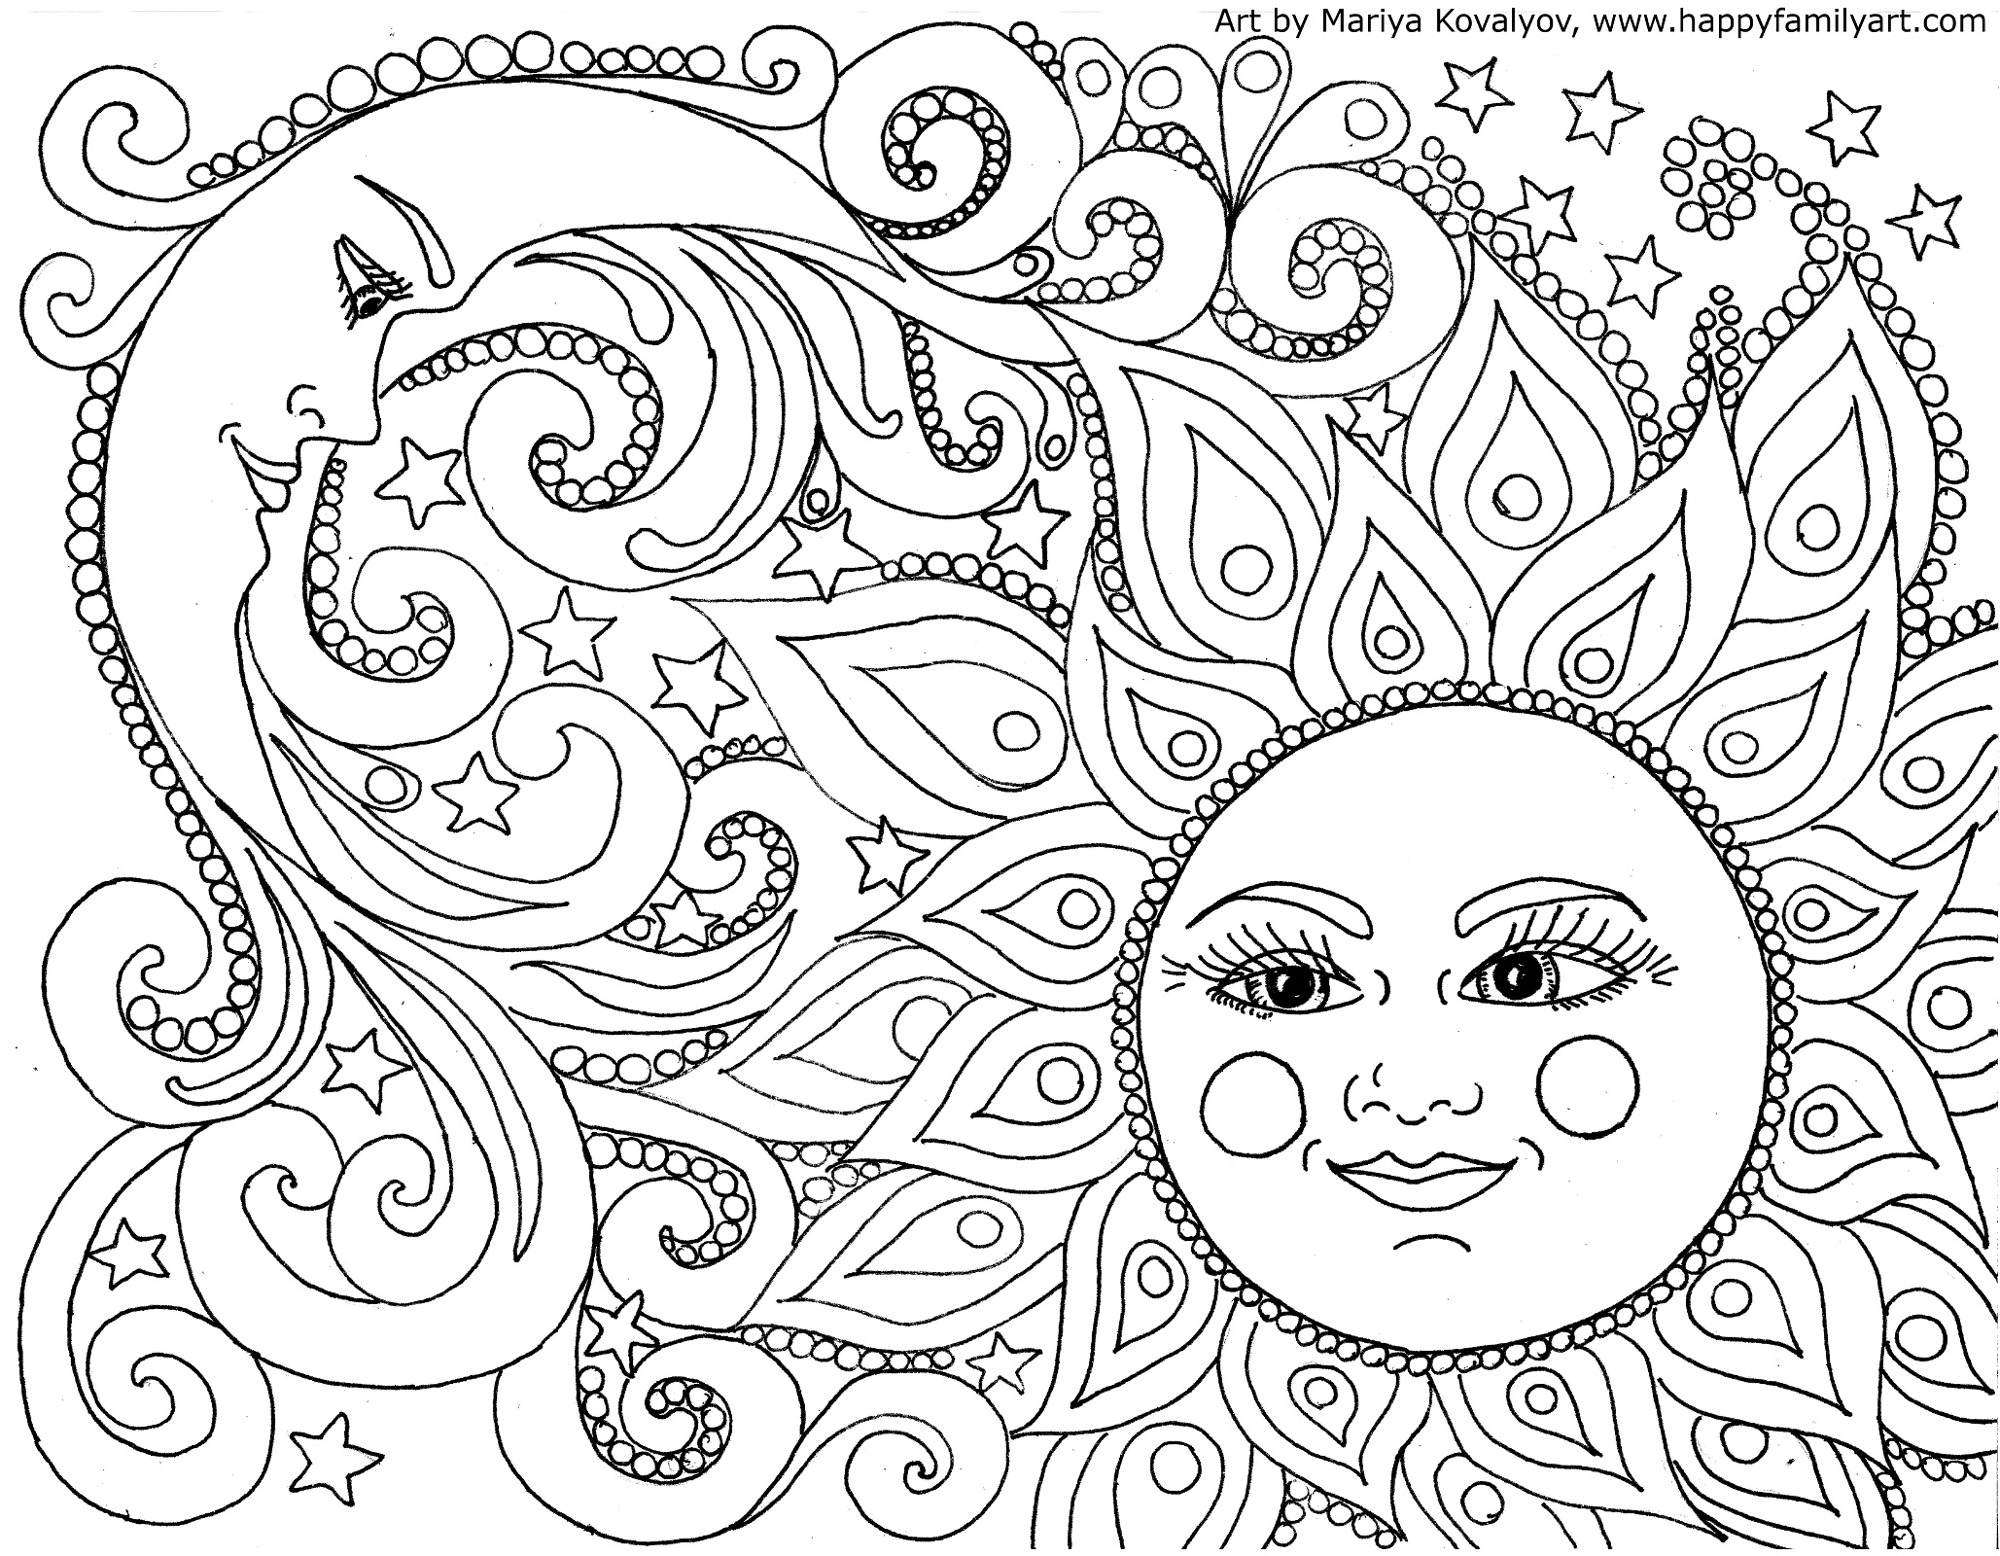 Happy Family Art - Original And Fun Coloring Pages - Free Printable Nature Coloring Pages For Adults